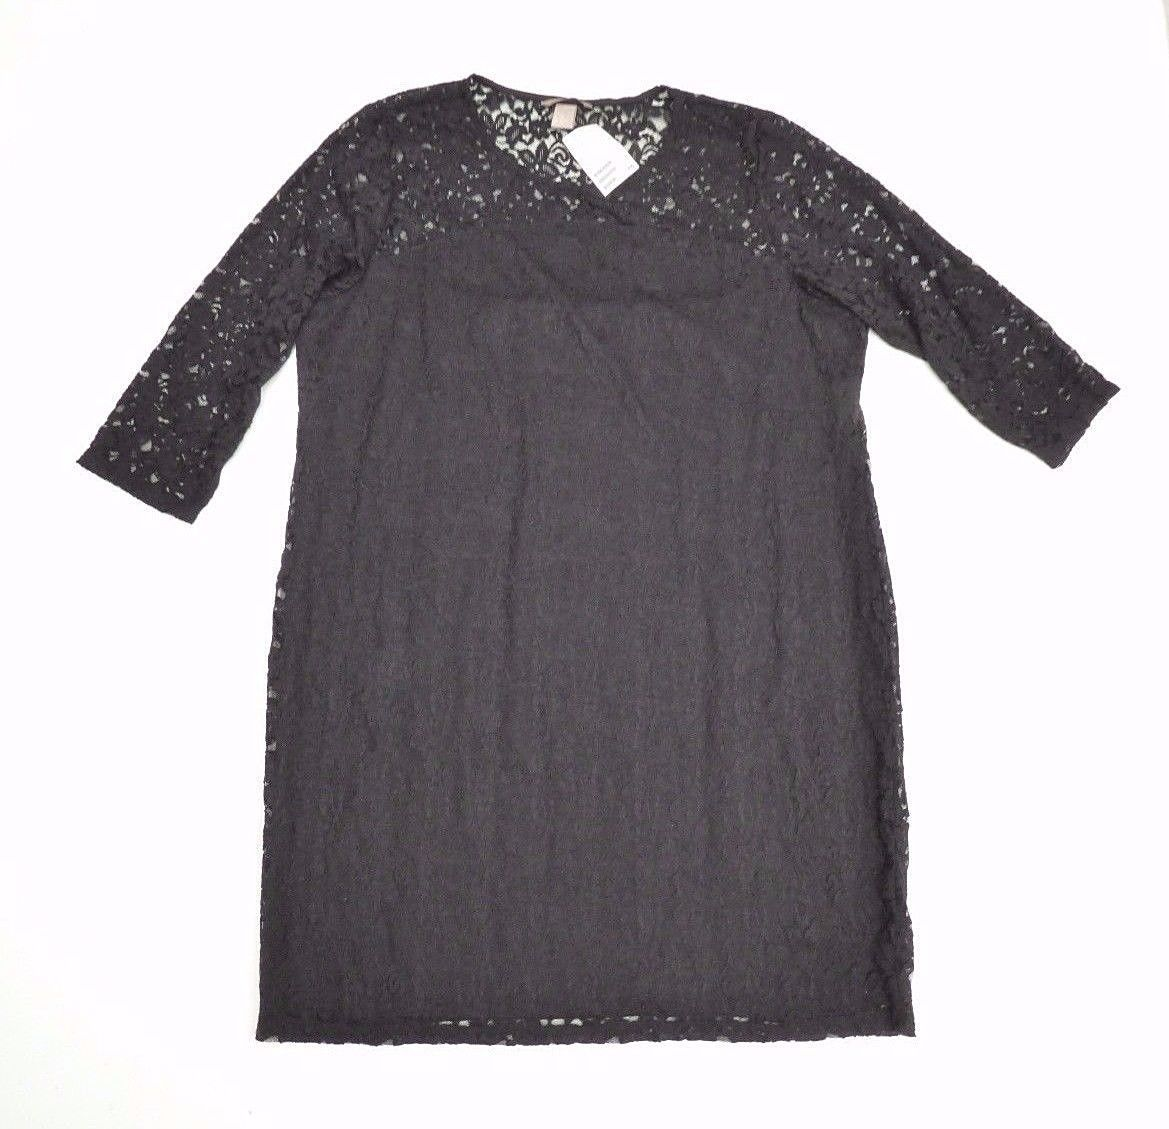 5c42e530d7e3 Black Lace H&M 3/4 sleeve Stretch Lined Knee Length Women's Dress Size 2XL